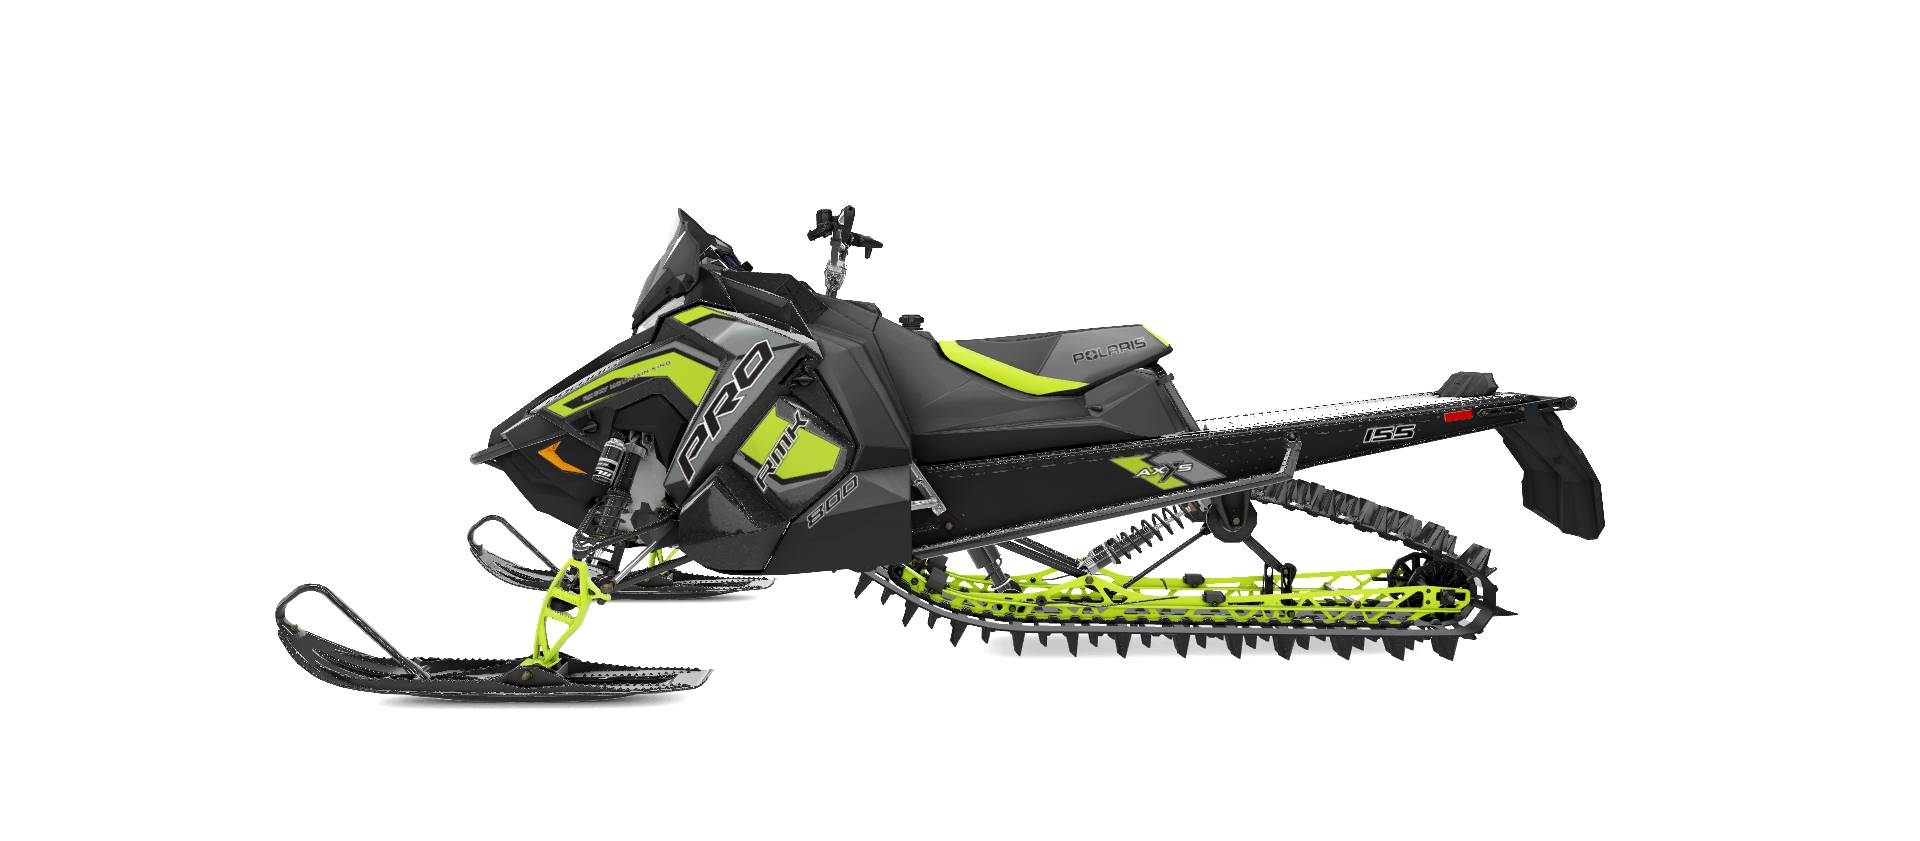 New Polaris 800 Pro Rmk 155 Snowcheck Select 3 0